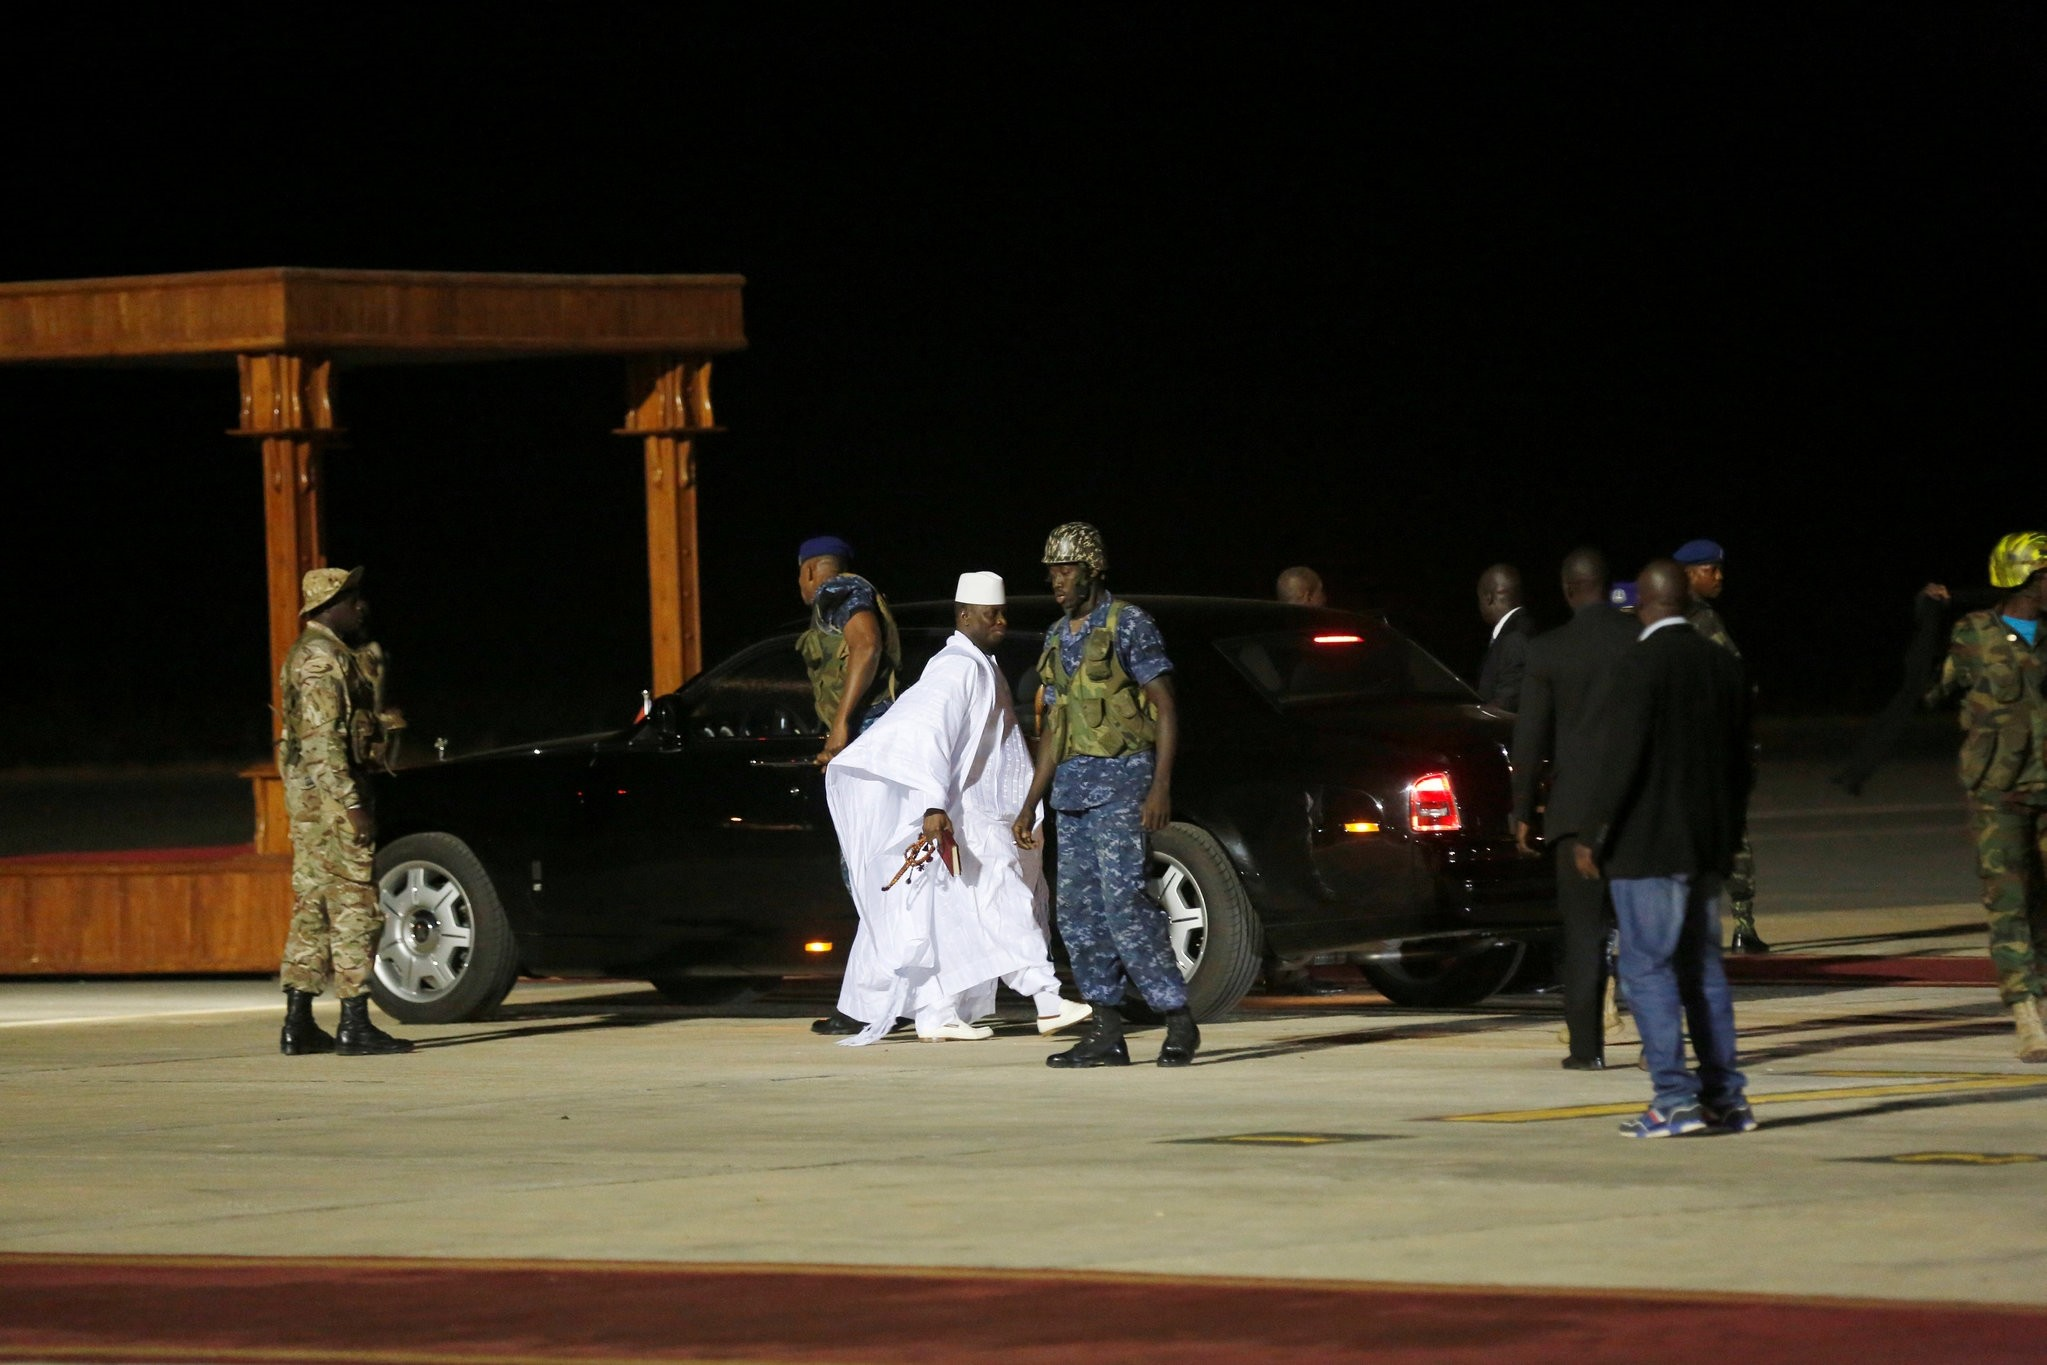 Former Gambian President Yahya Jammeh arrives at the airport before flying into exile from Gambia, January 21, 2017. (REUTERS Photo)